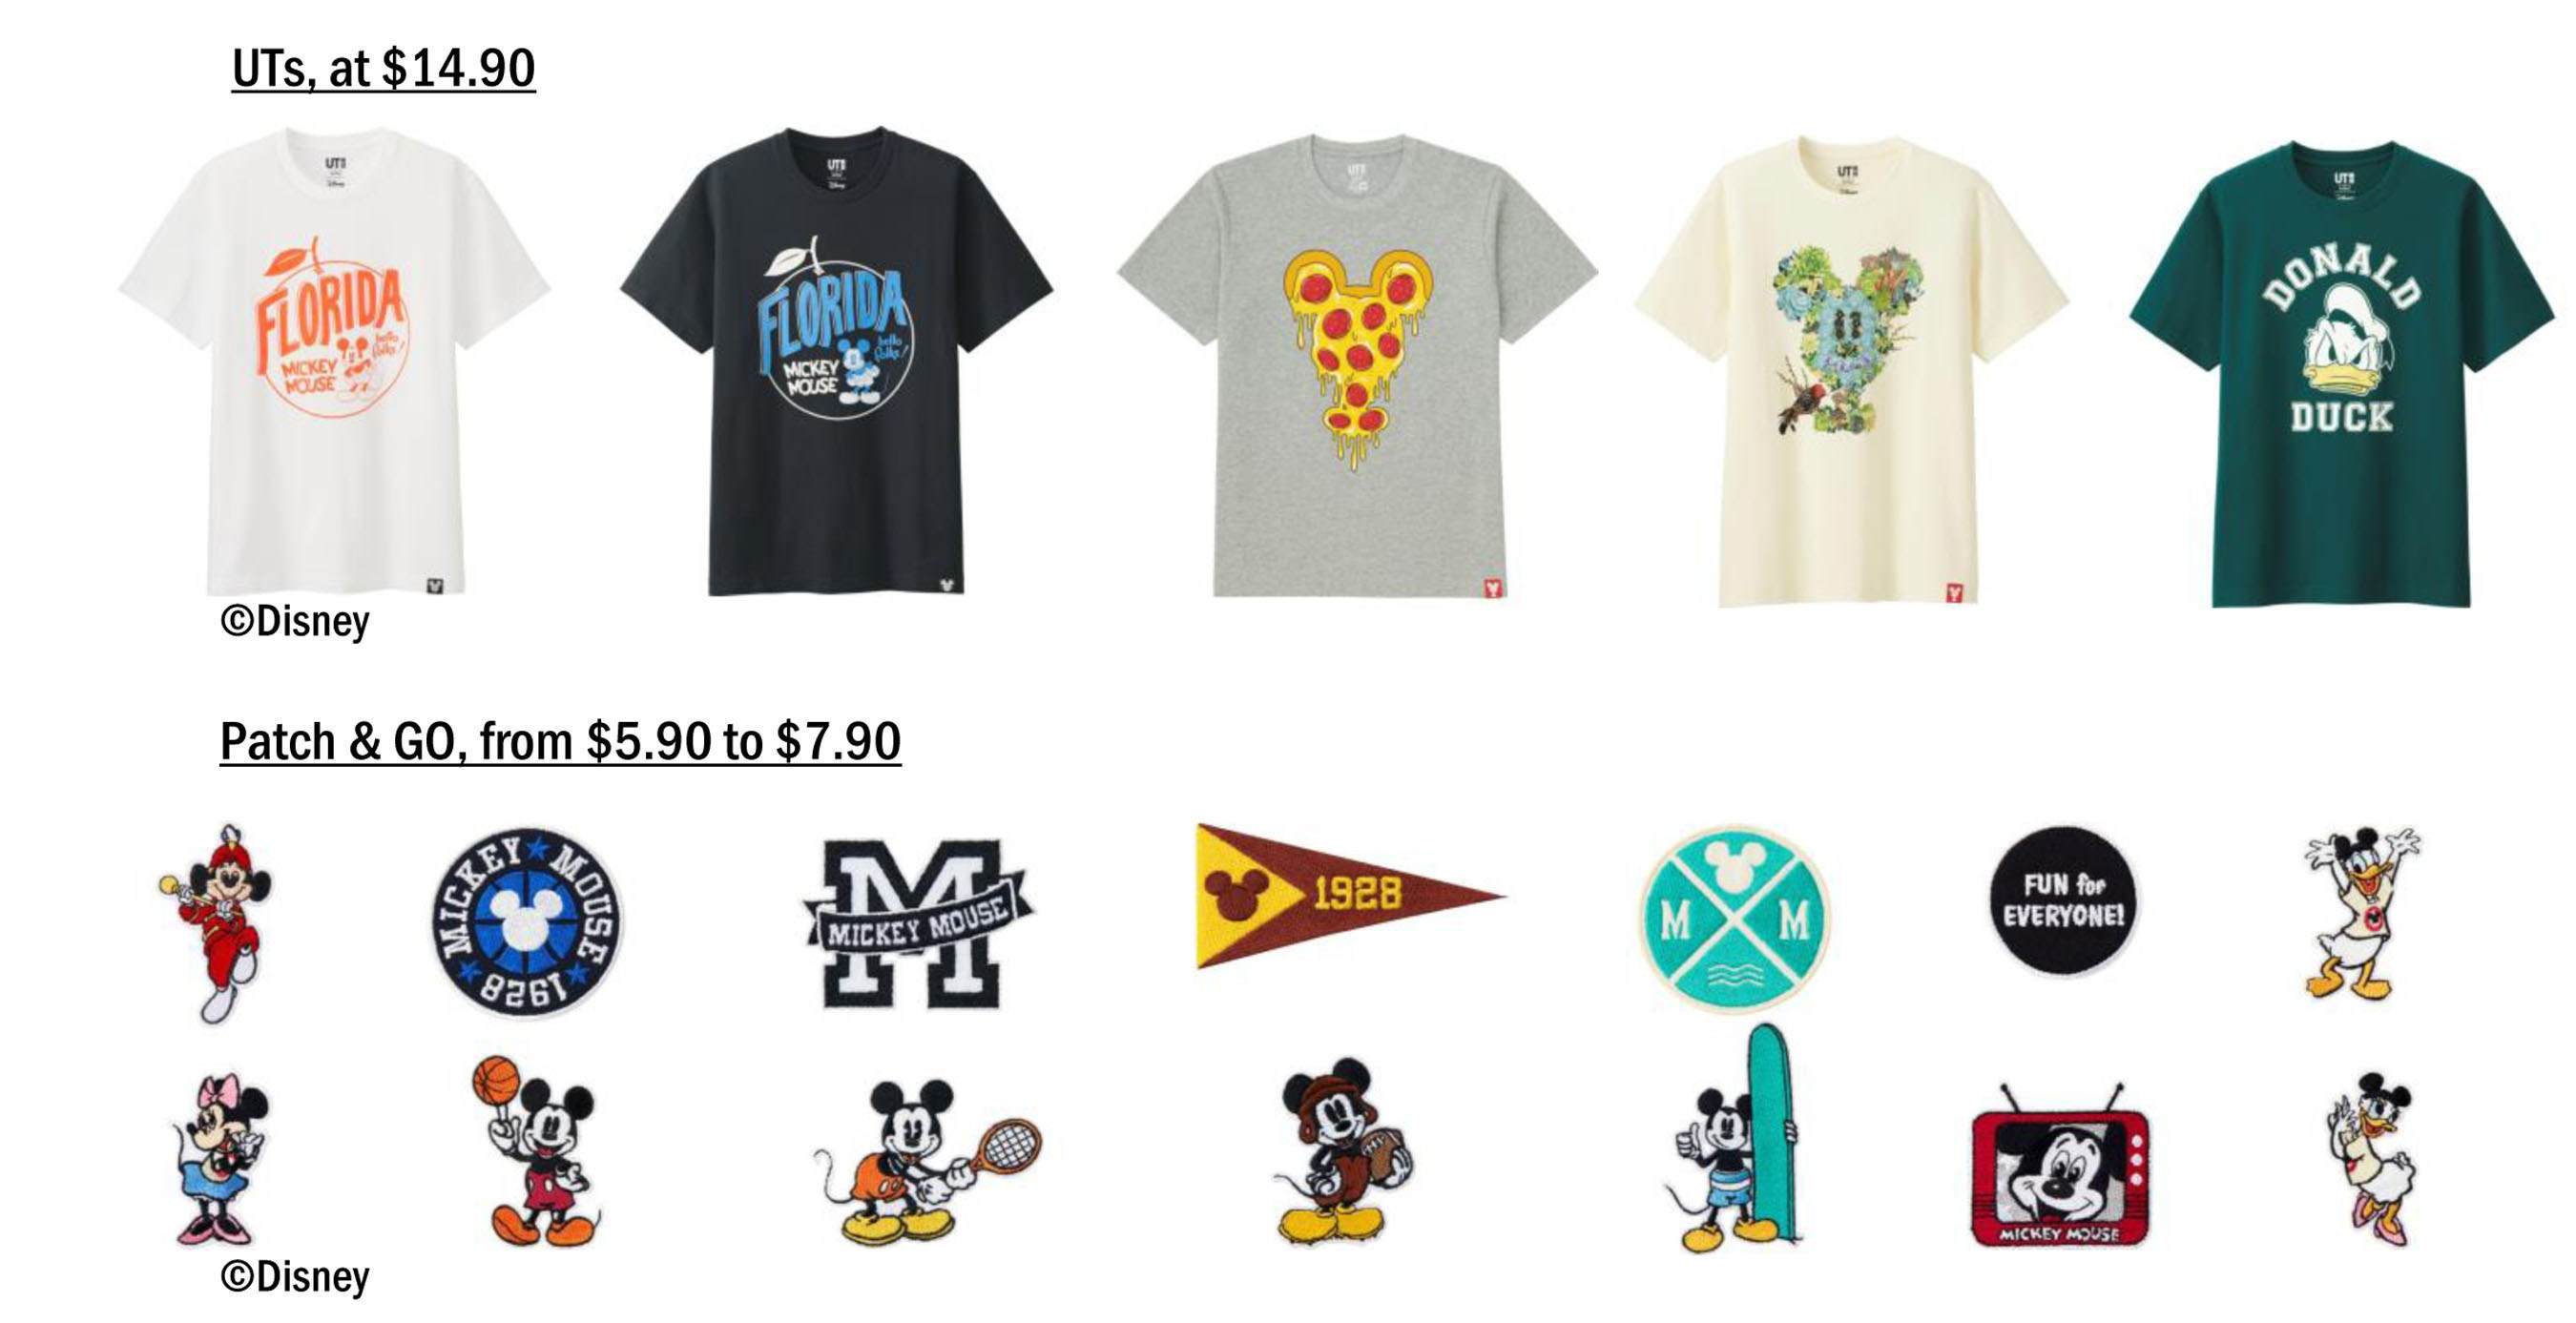 """An assortment of products are sold exclusively at the UNIQLO store at Disney Springs and at the Uniqlo.com online store, featuring iconic Disney characters like Mickey Mouse, as well as """"city"""" T-Shirts including Orlando, Florida. The store also sells exclusive Disney-themed patches, which can be ironed onto any UNIQLO item of clothing on the spot as a complimentary service."""